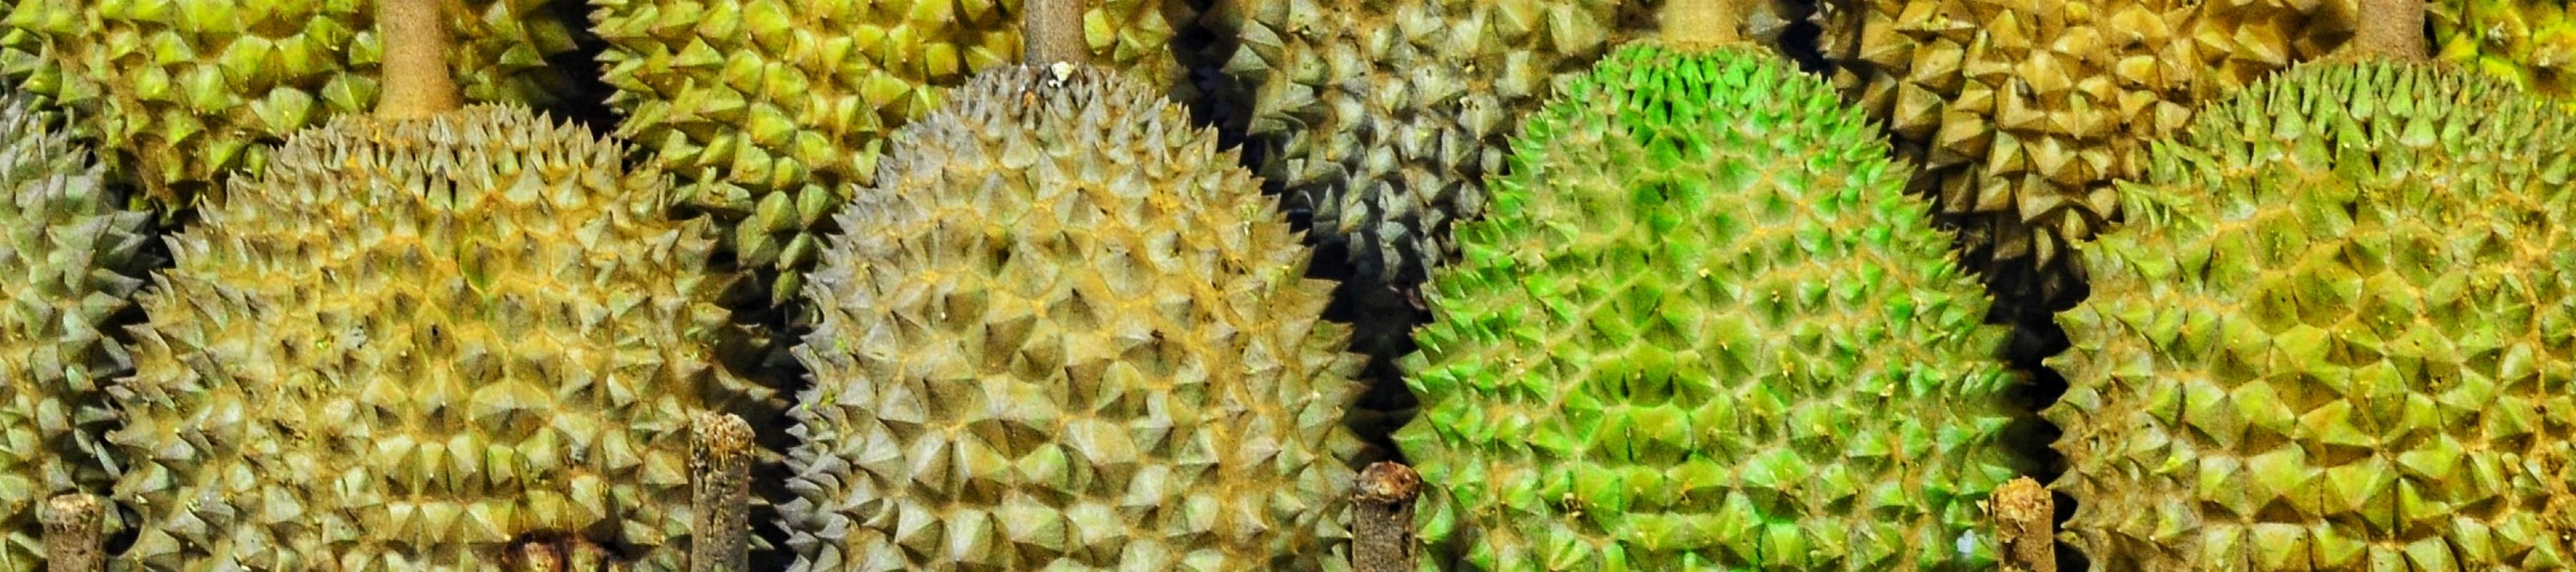 Durian  The king of fuit  | Kew